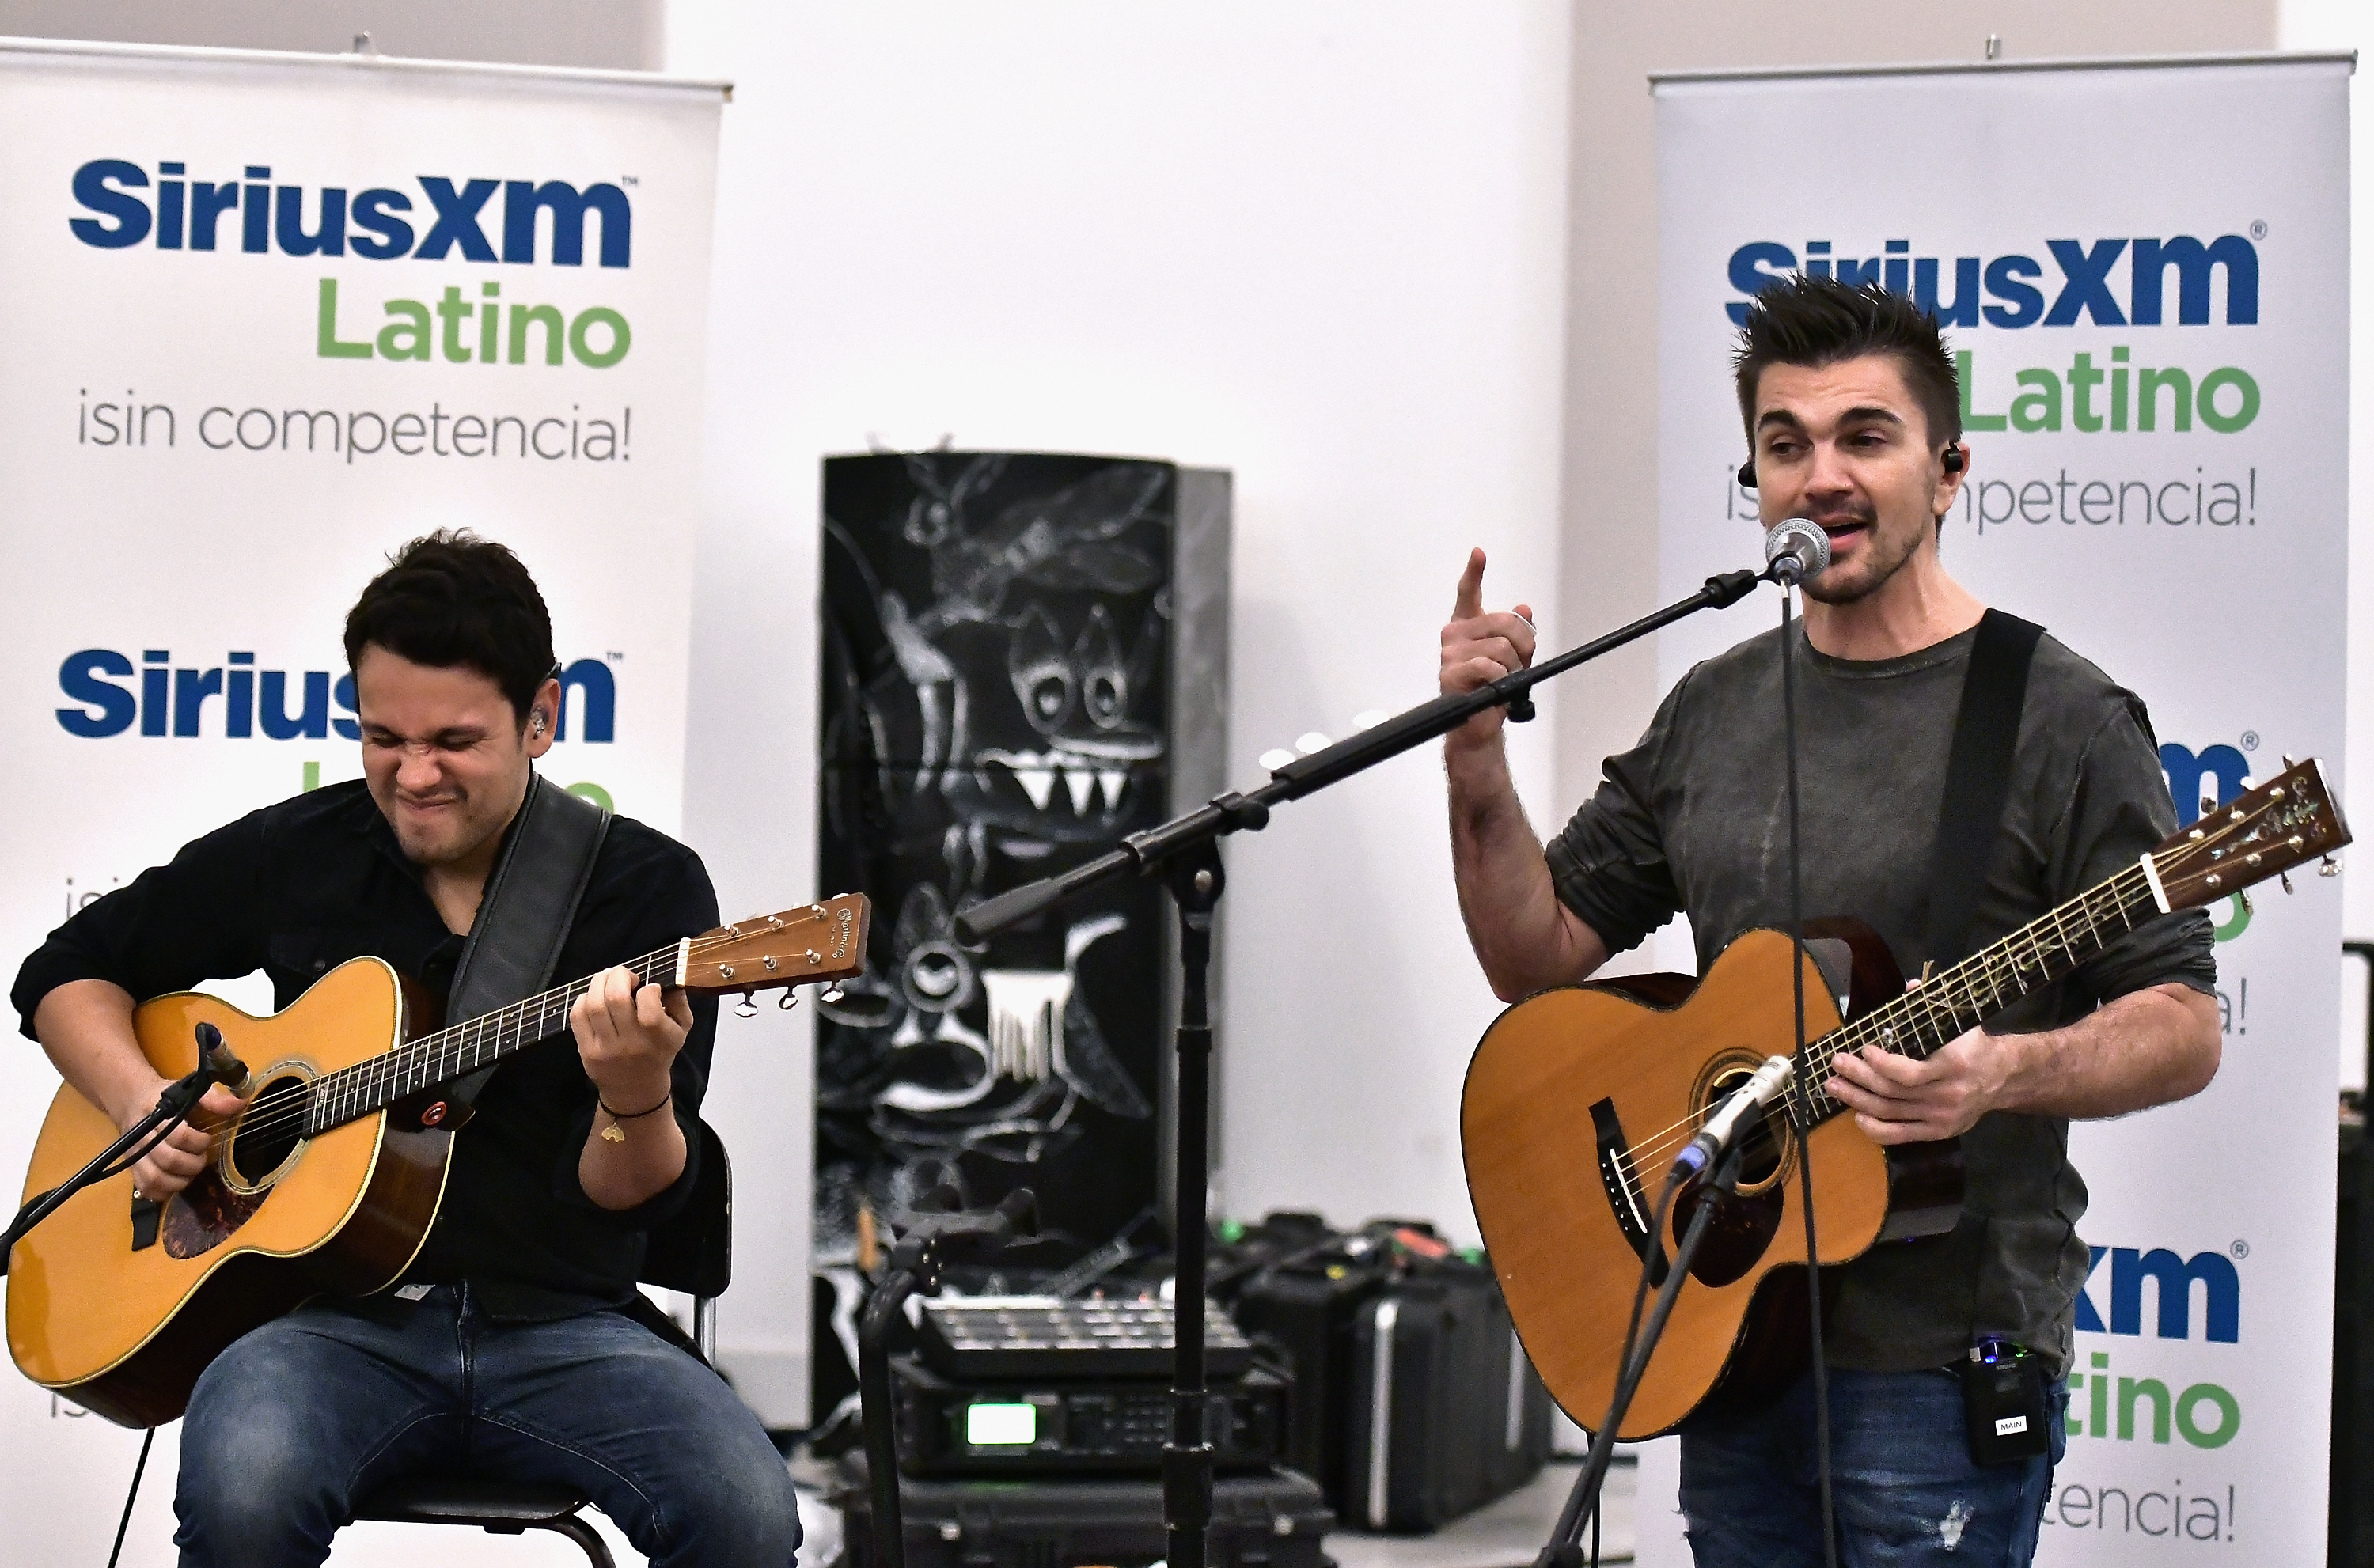 Juanes Performs For SiriusXM's Artist Confidential Series At The Artist's Qwn Studios On July 25, 2017 In Doral, FL